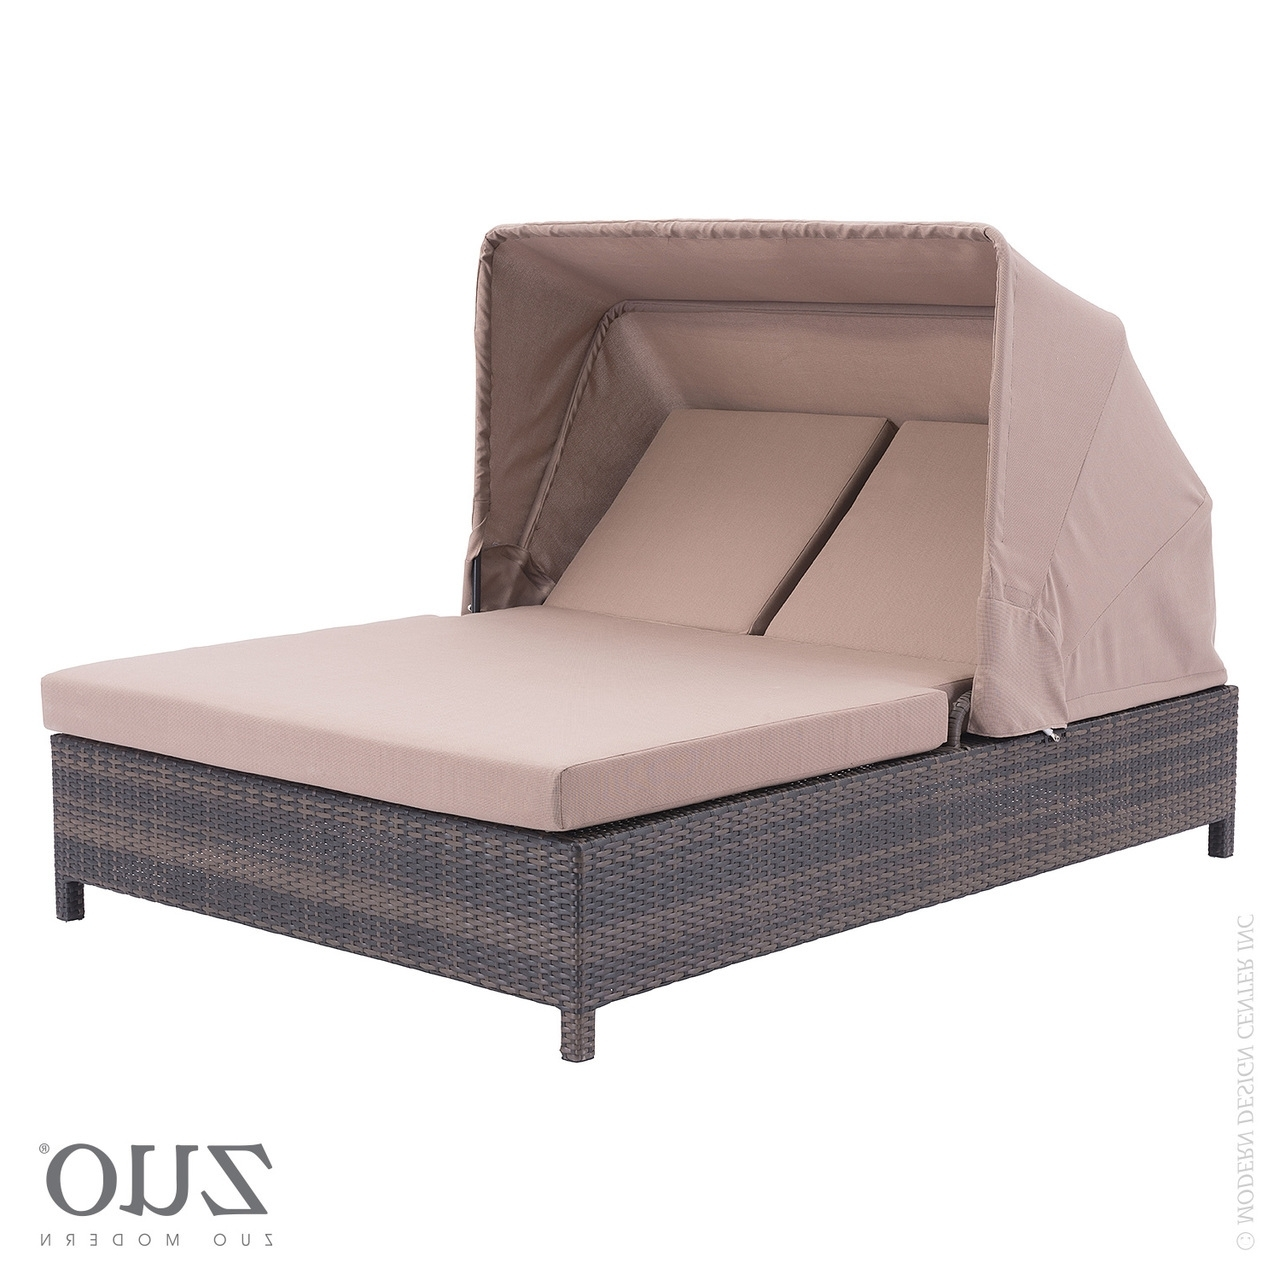 Popular Ontario Chaise Lounges In Siesta Key Double Chaise Lounge Brown –  (View 4 of 15)